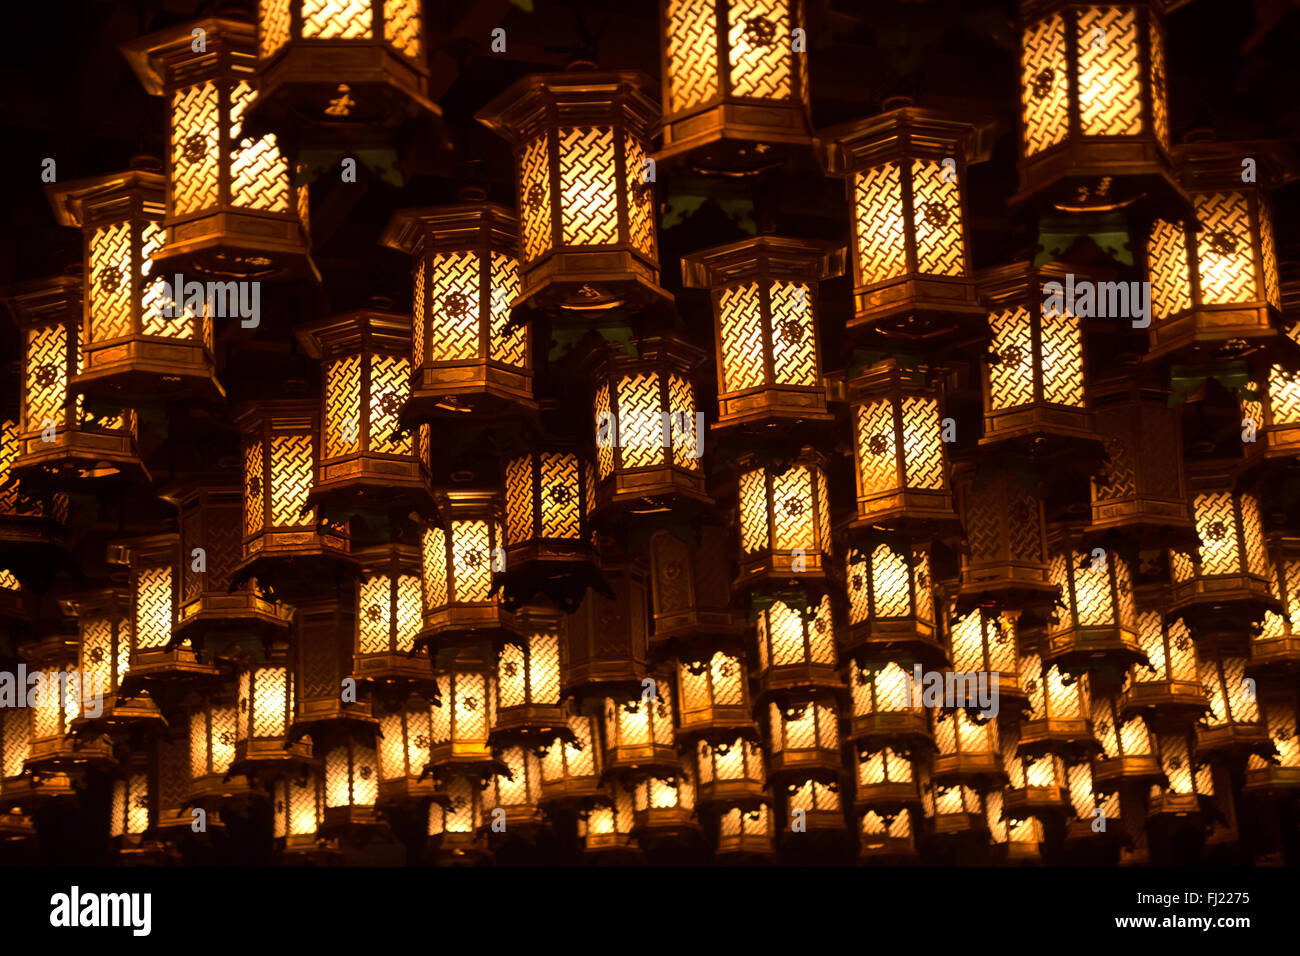 La décoration à l'intérieur du temple Daiganji, Miyajima , Japon Photo Stock